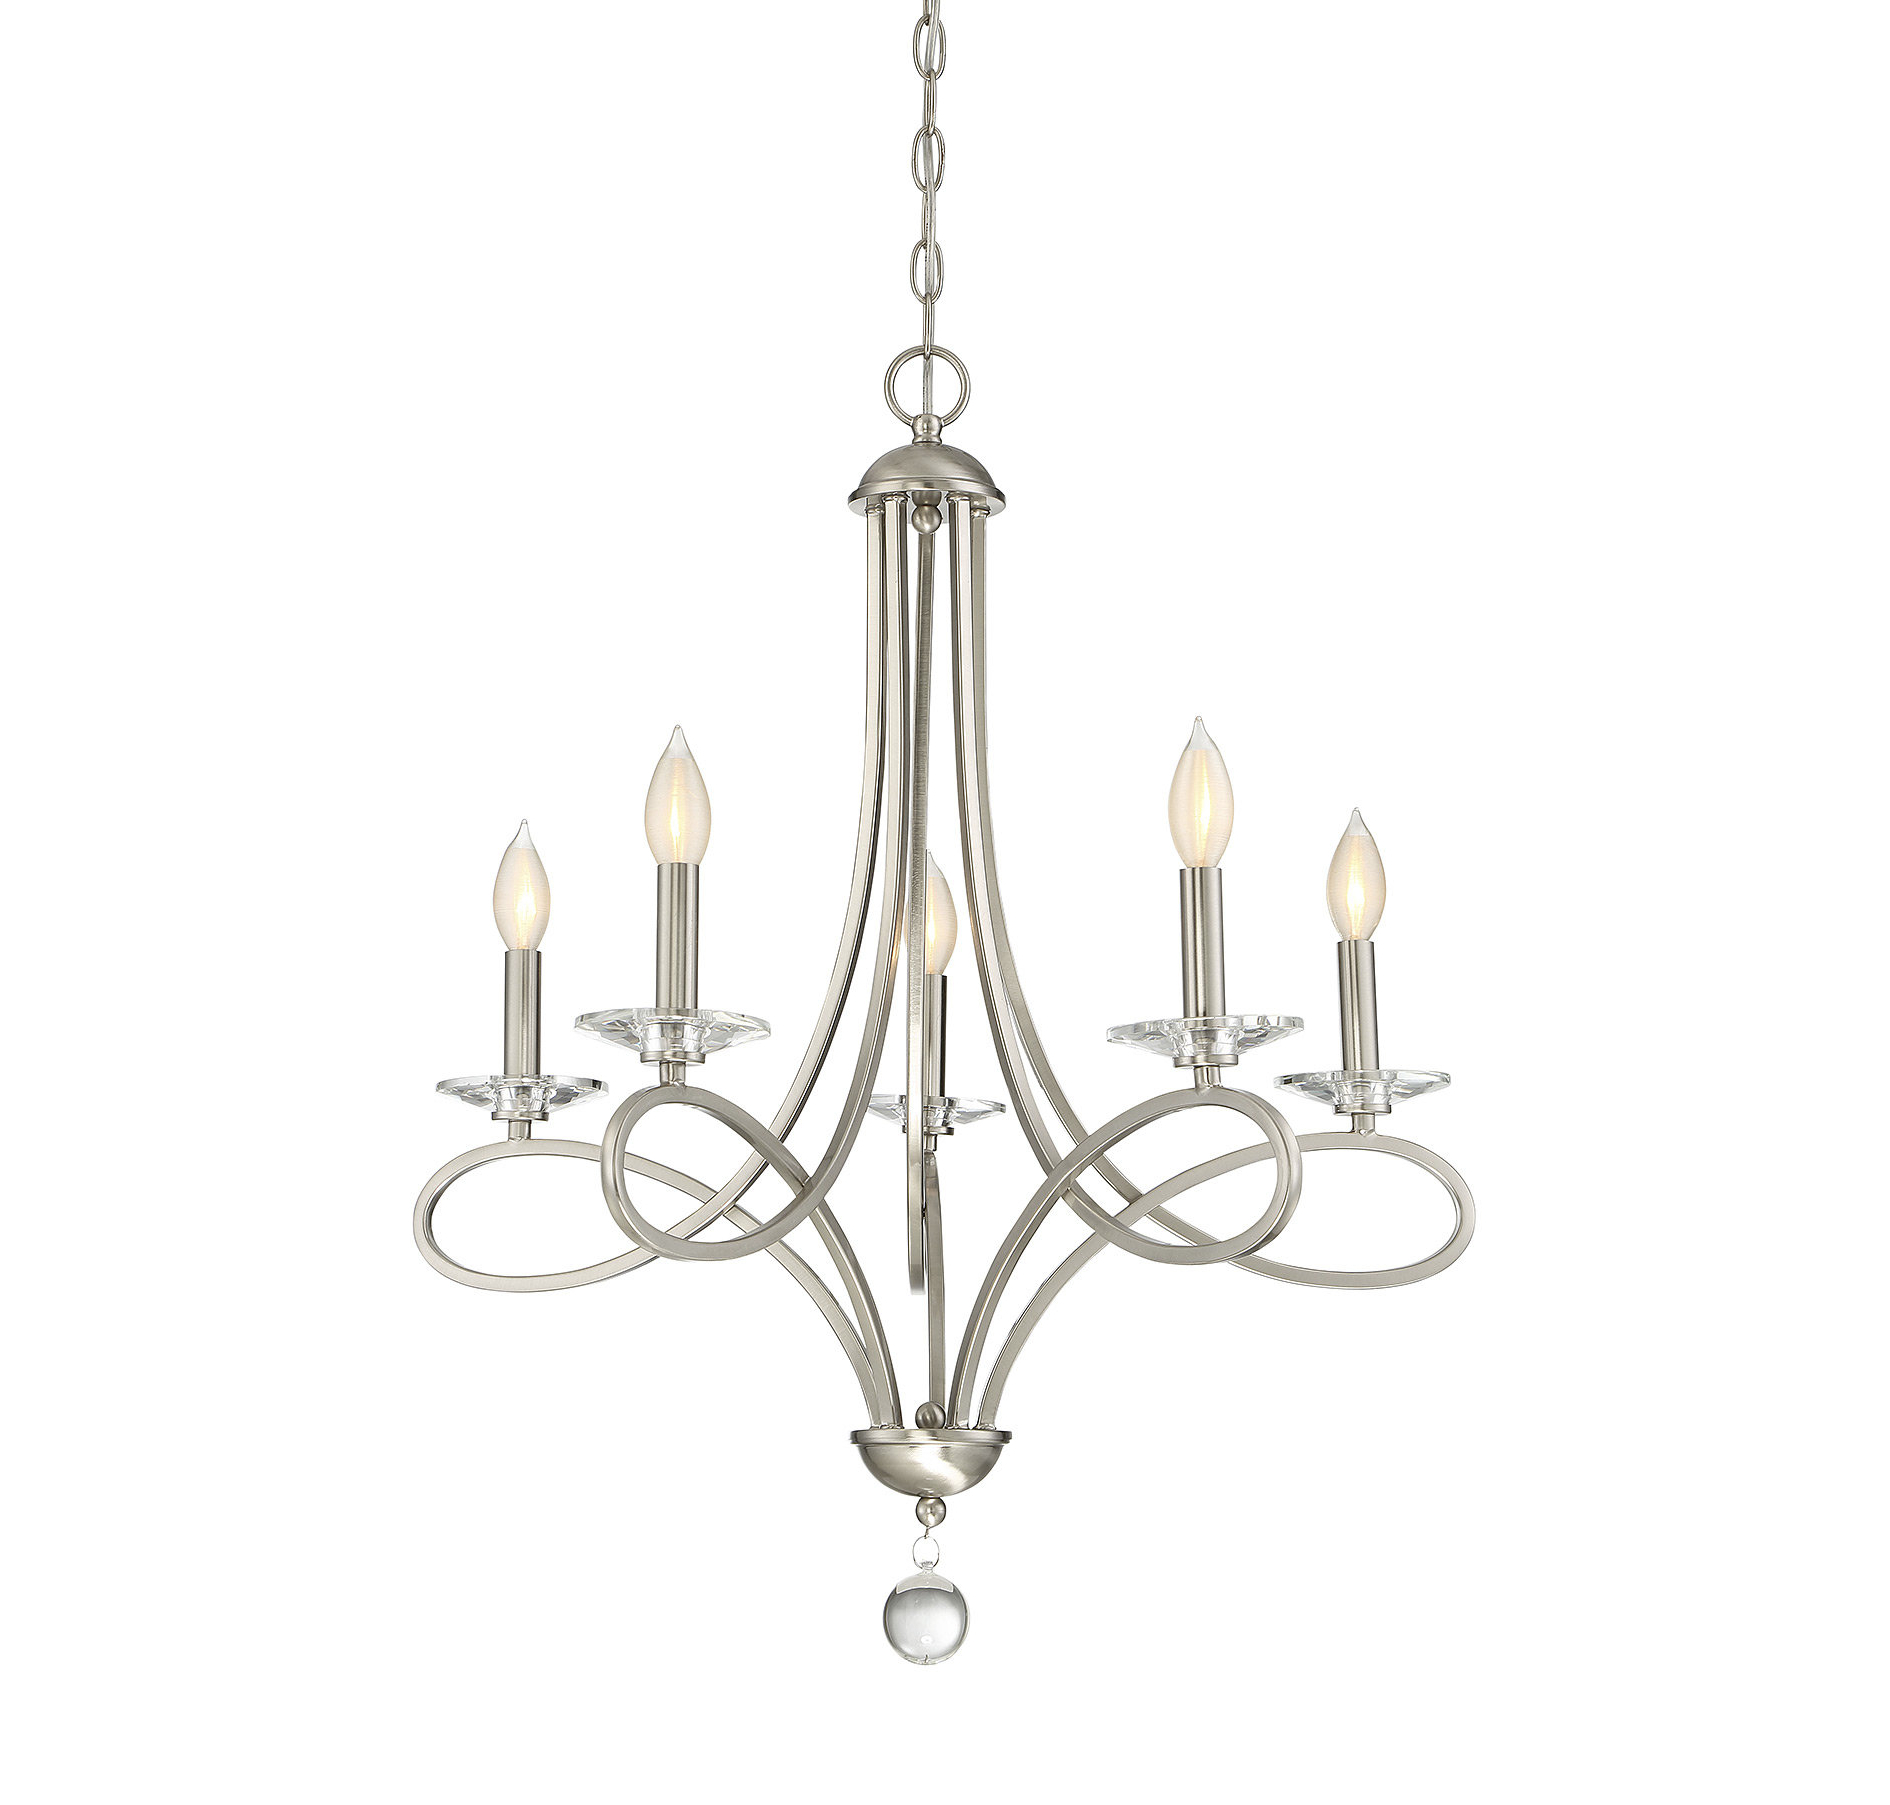 Willa Arlo Interiors Berger 5 Light Candle Style Chandelier Regarding Popular Florentina 5 Light Candle Style Chandeliers (View 20 of 20)